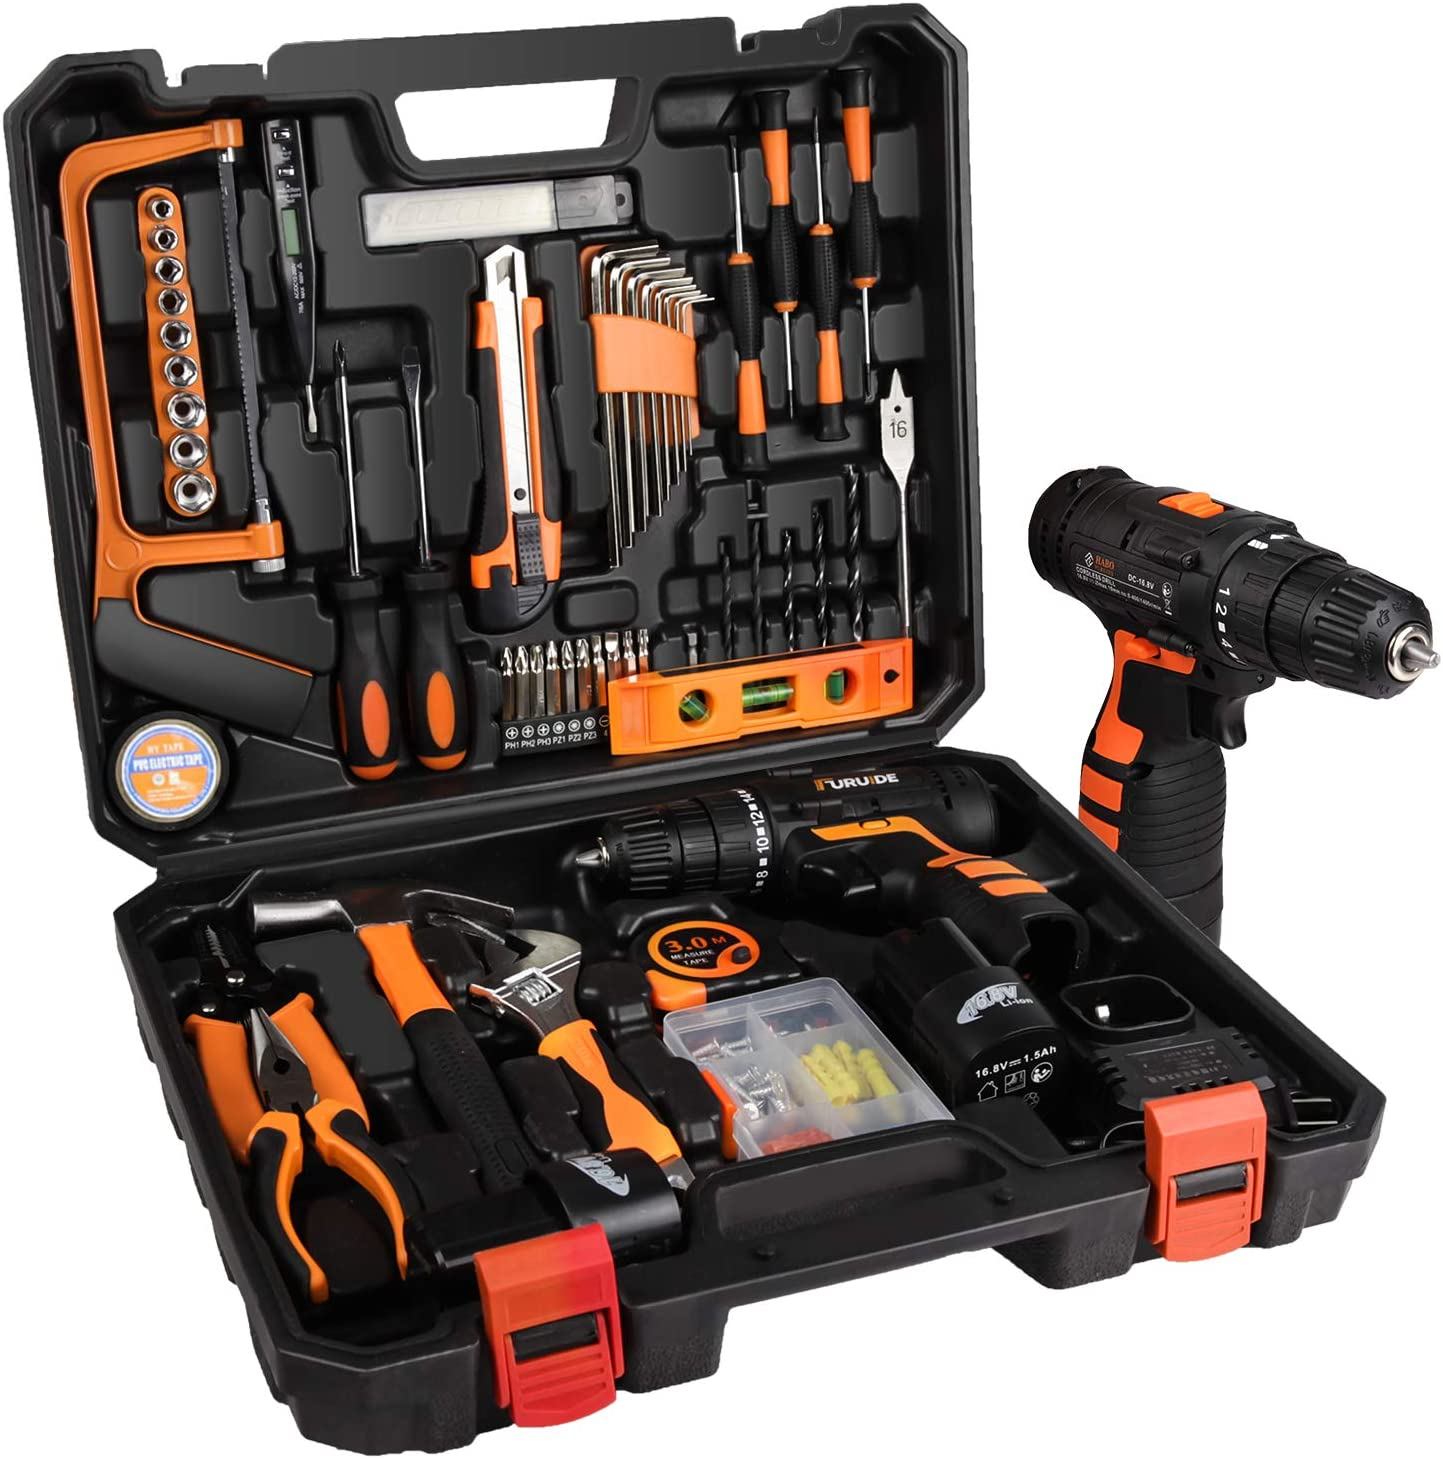 jar-owl Tool Kits 16.8V Cordless Drill Lithium Lon with 91 Piece Tool Set Combination Package and Plastic Toolbox Storage Case